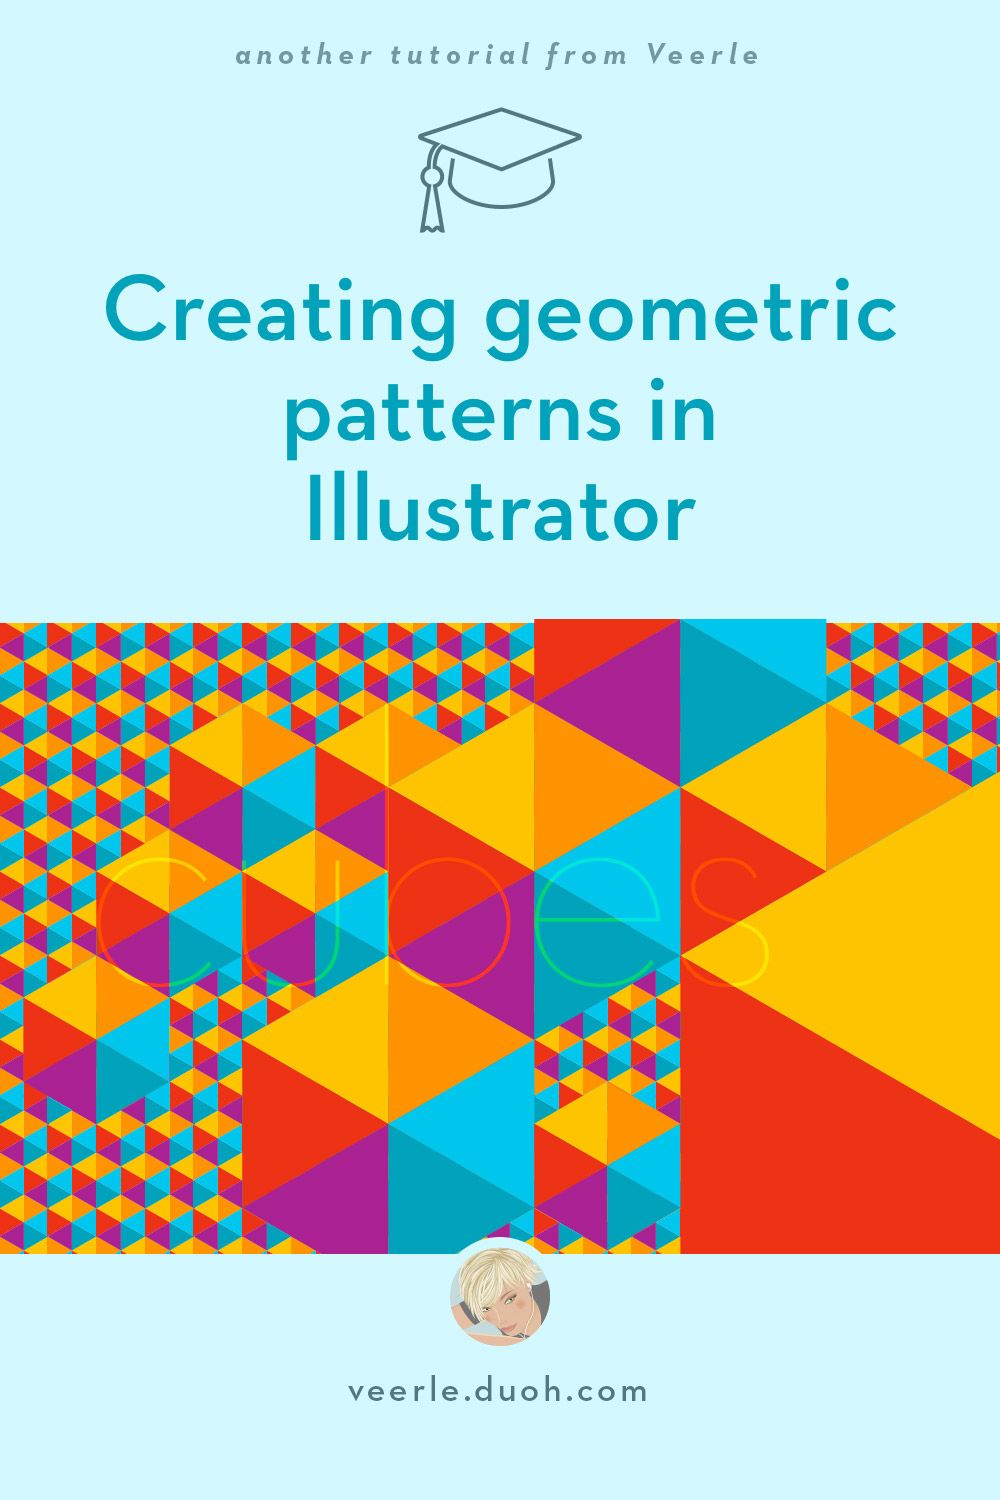 Create A Cubical Pattern In Adobe Illustrator With Images